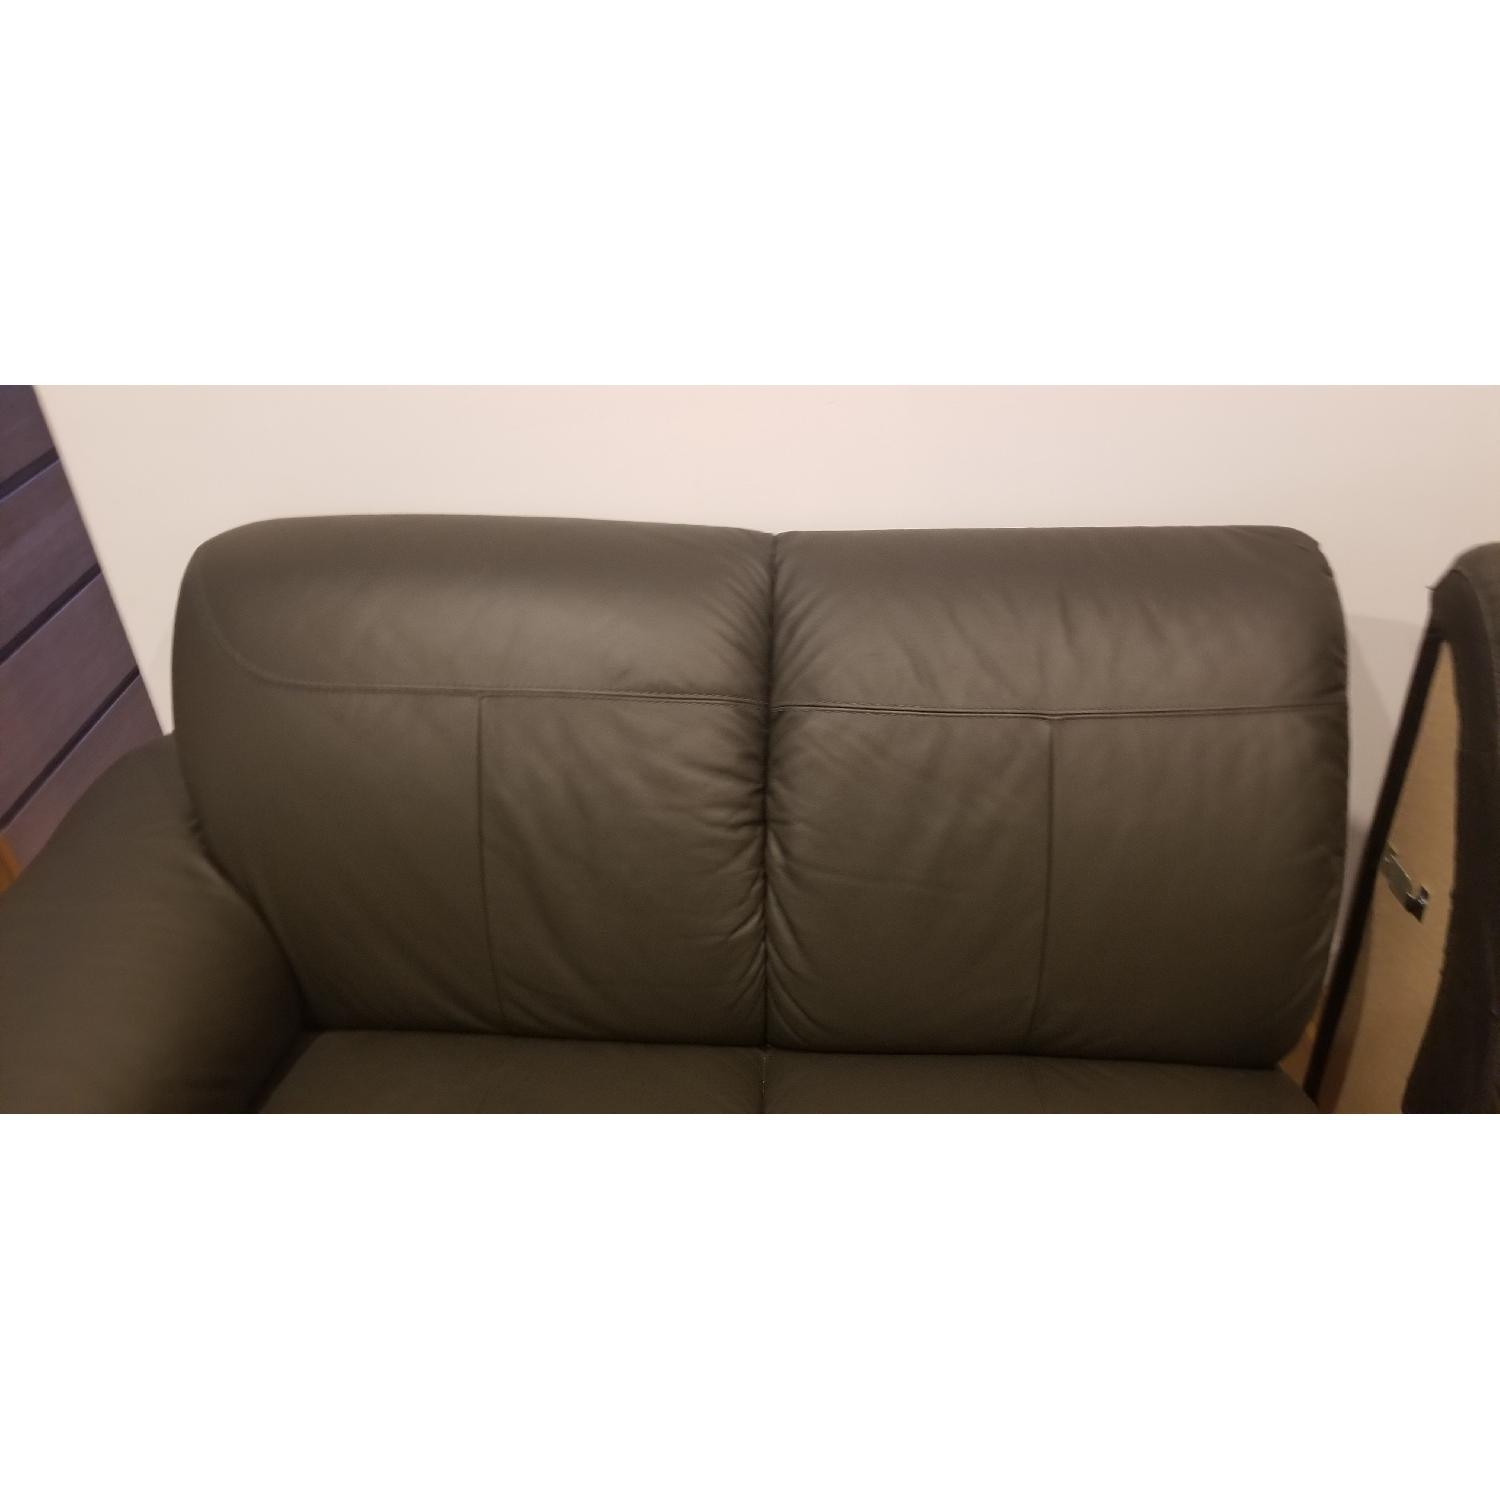 Ikea Timsfors Faux Leather Sectional Sofa - image-15